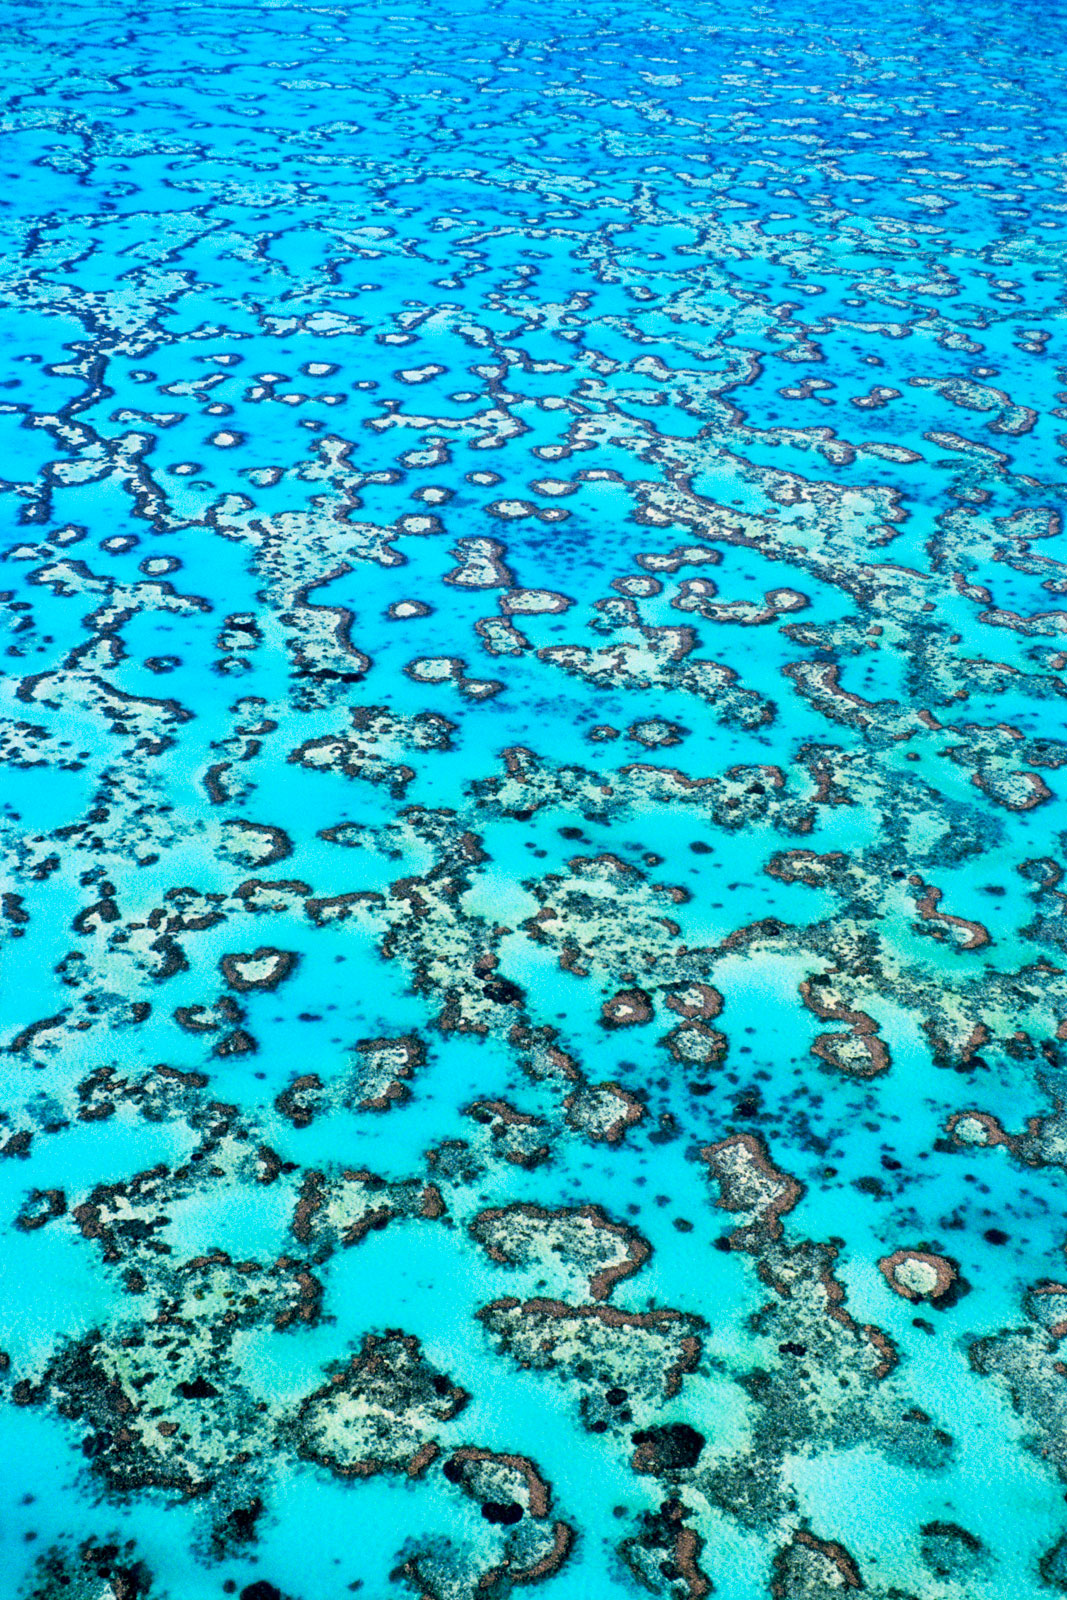 Coral reefs, Great Barrier Reef, Australia